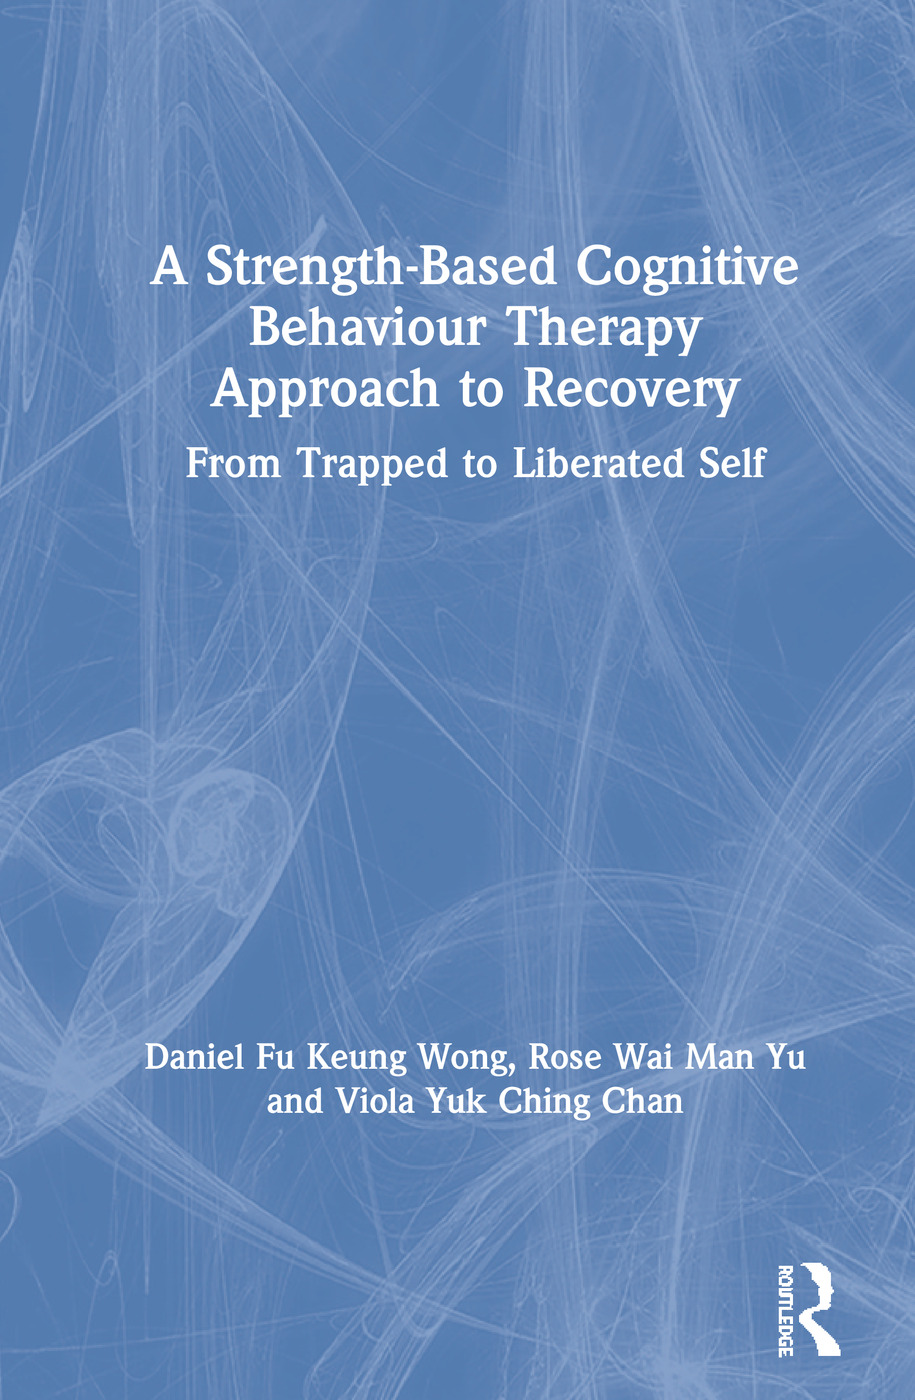 A Strength-Based Cognitive Behaviour Therapy Approach to Recovery: From Trapped to Liberated Self book cover